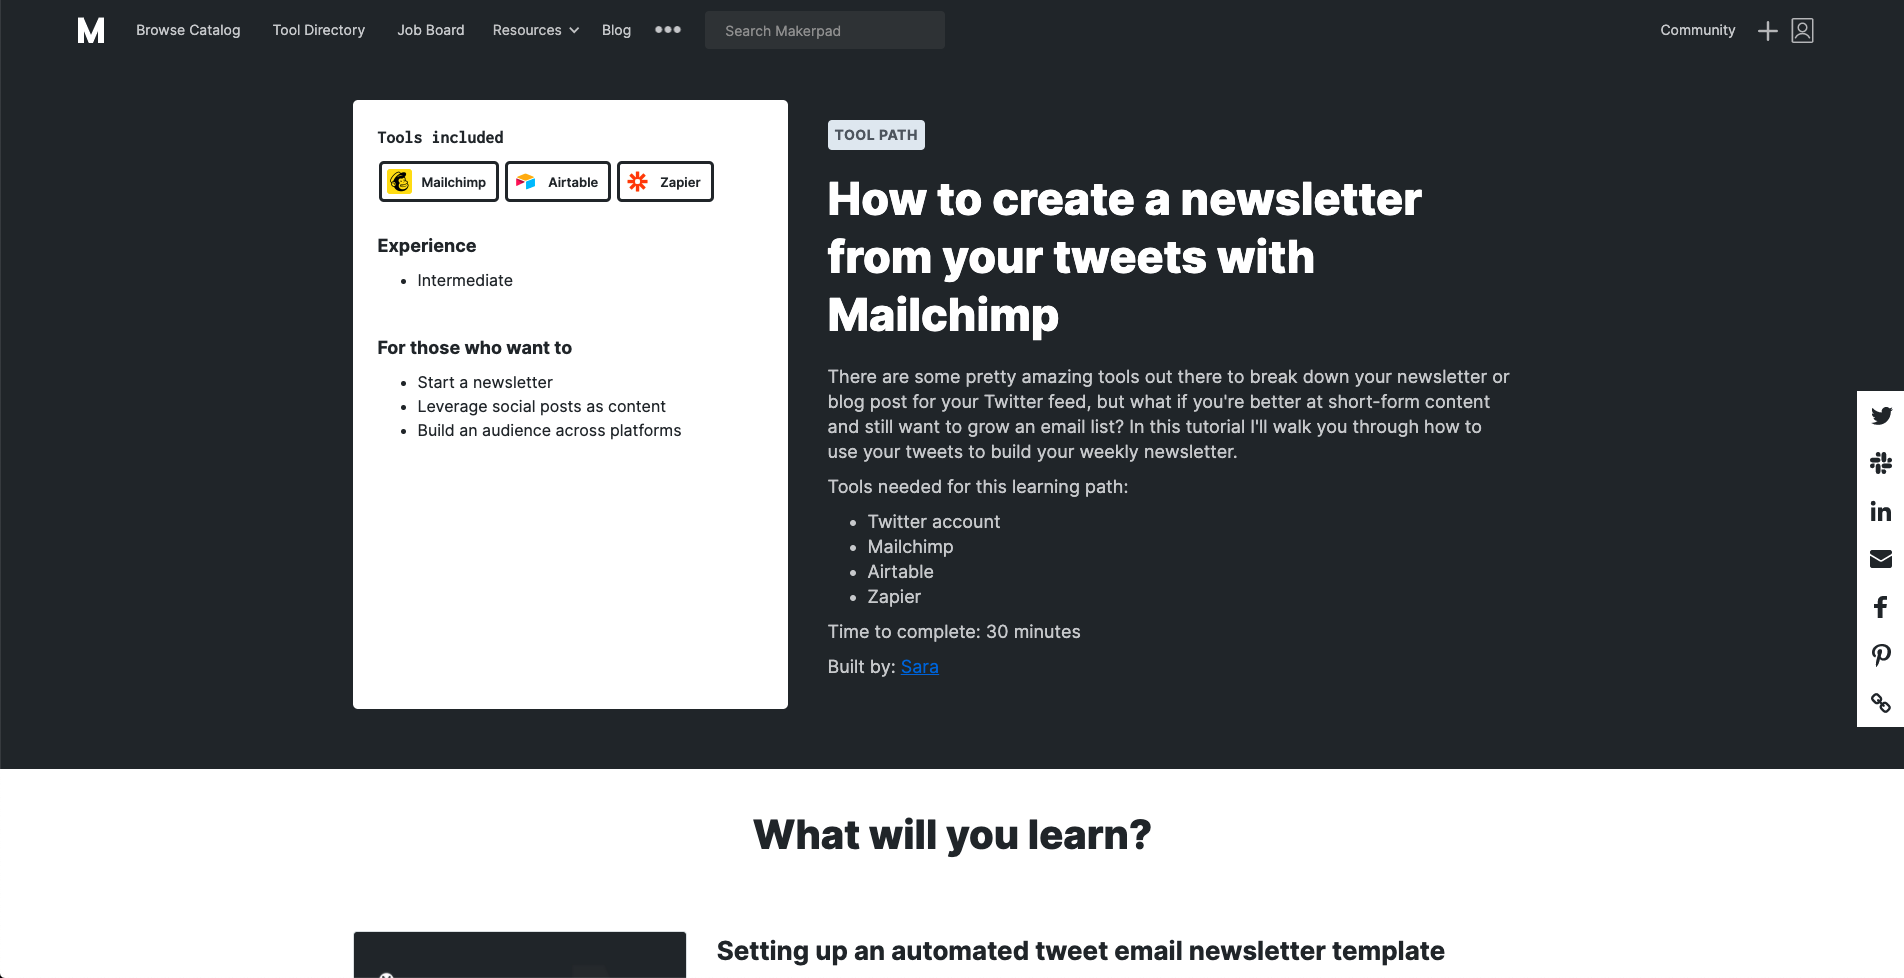 Create a newsletter from your tweets with Mailchimp